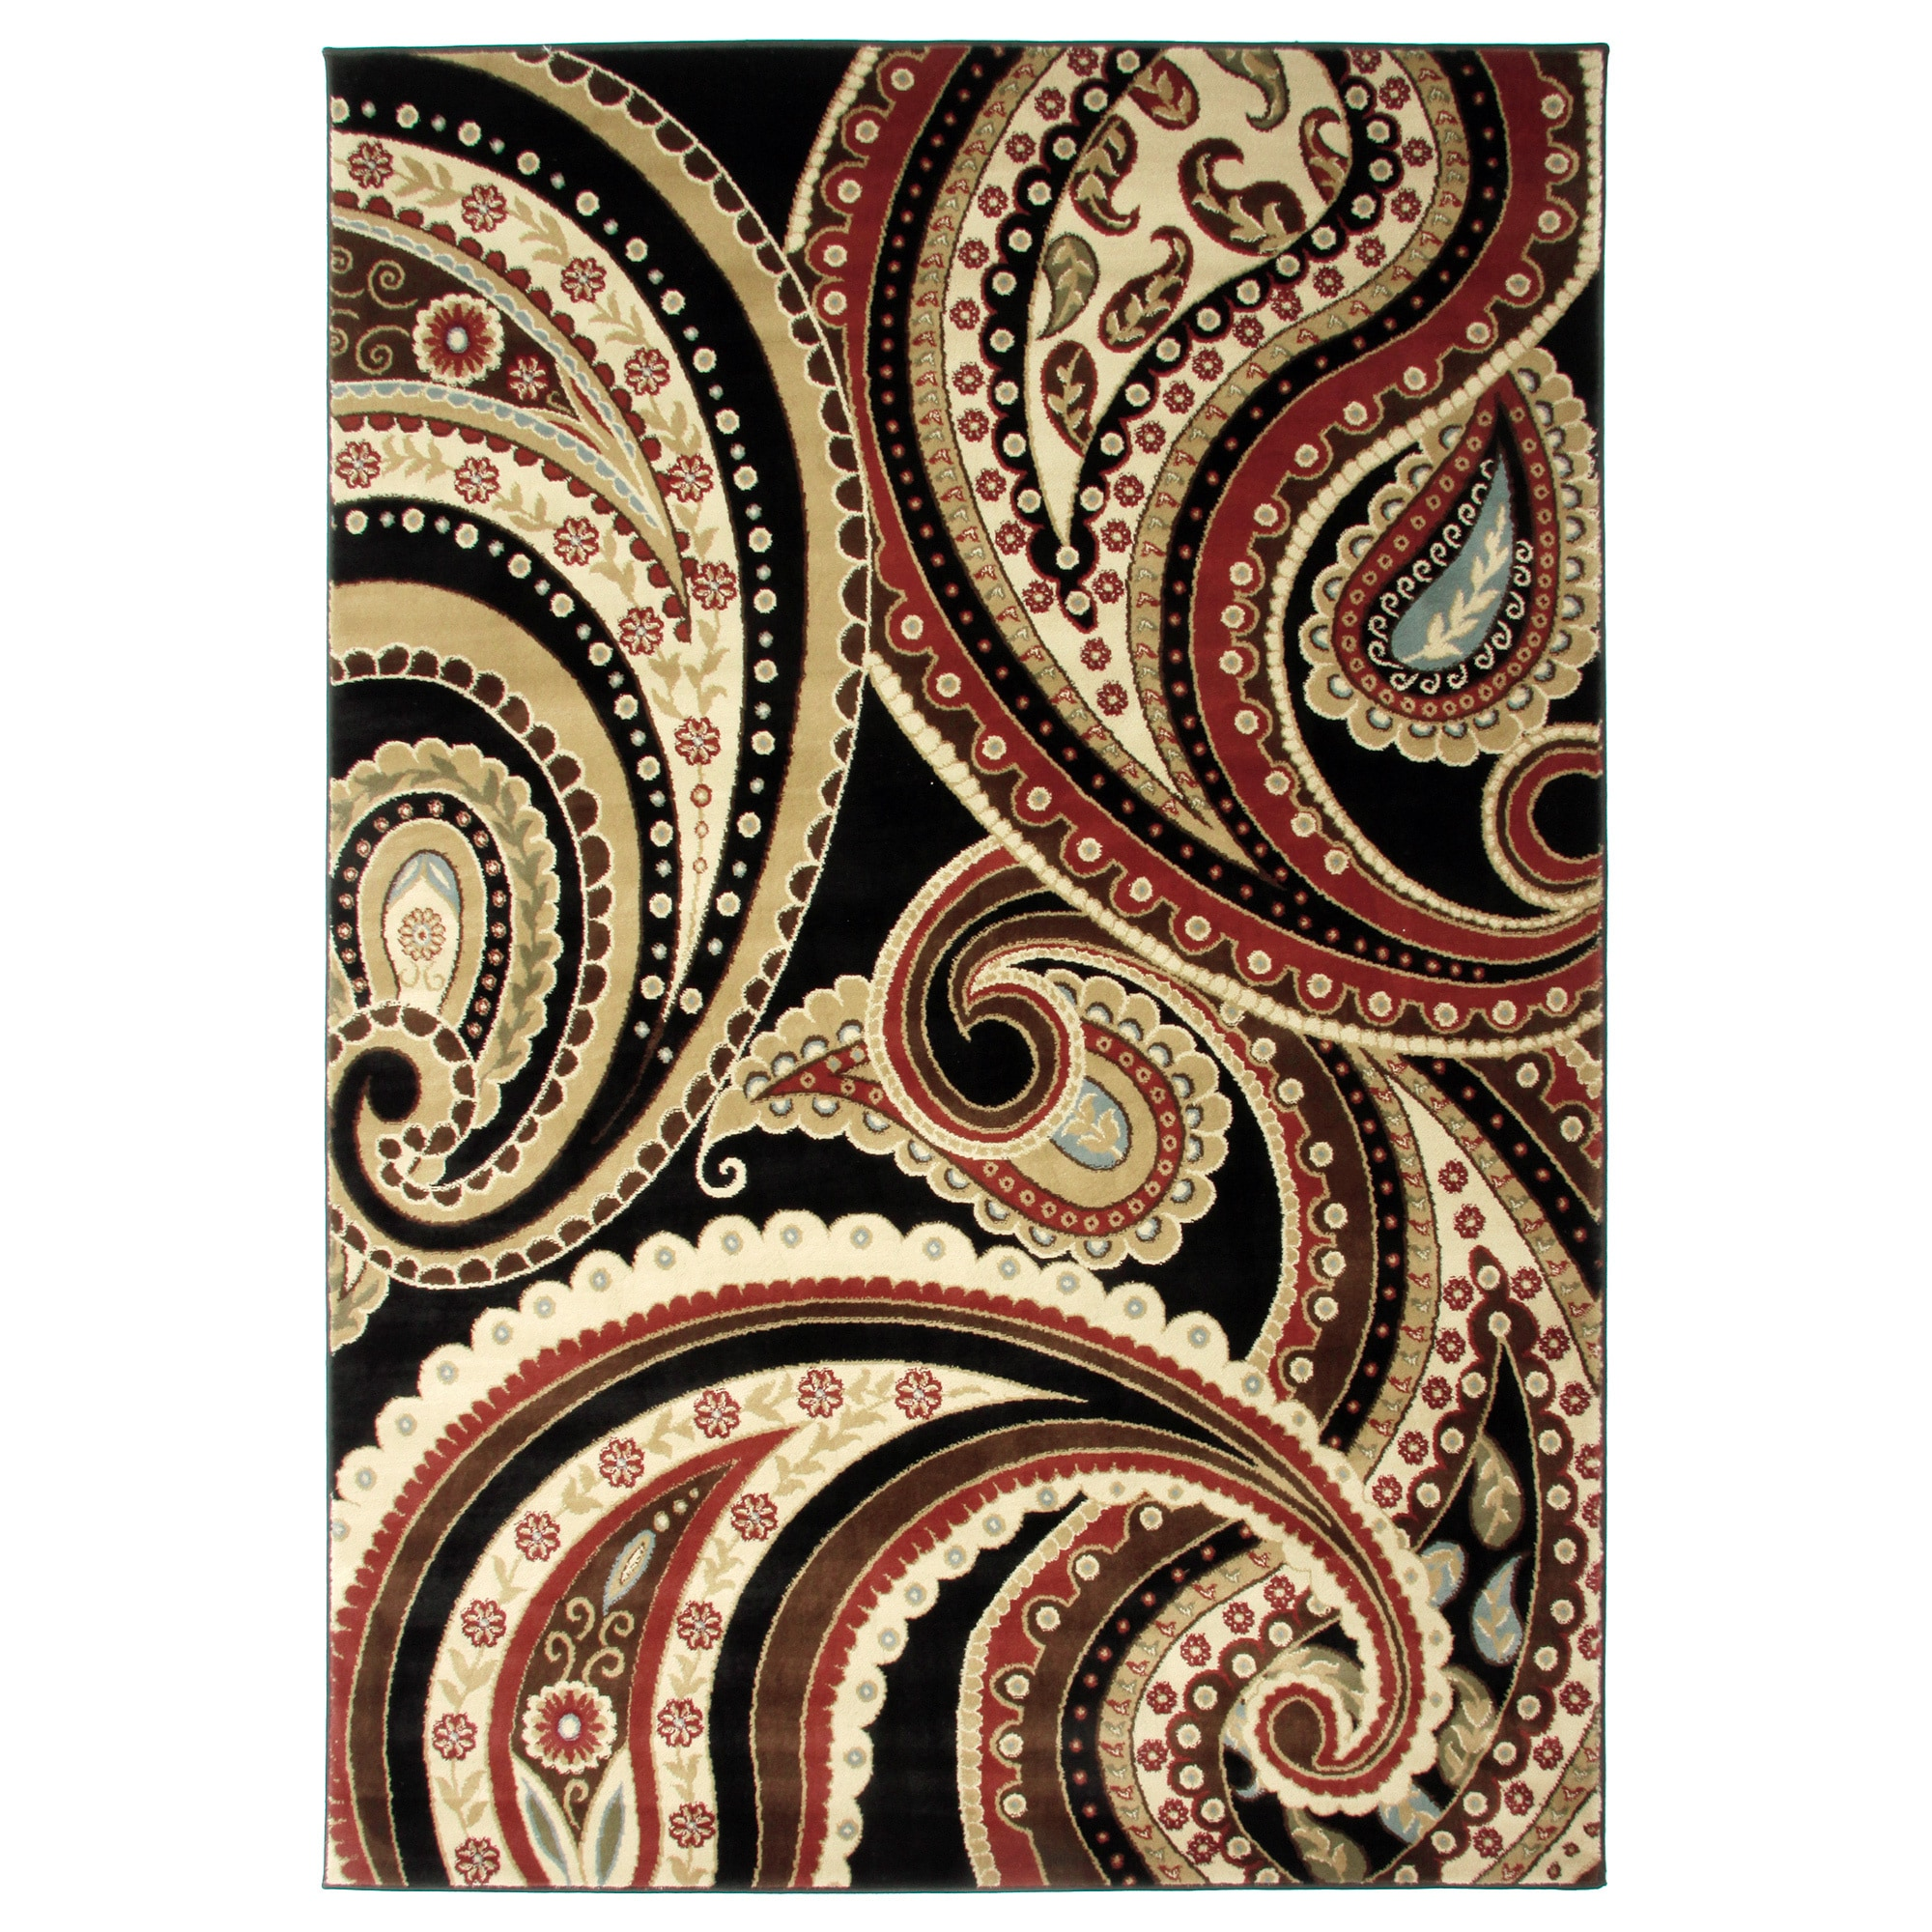 Maryberry Rugs Contemporay Paisley Multicolor Area Rug (7'10 x 9'10)